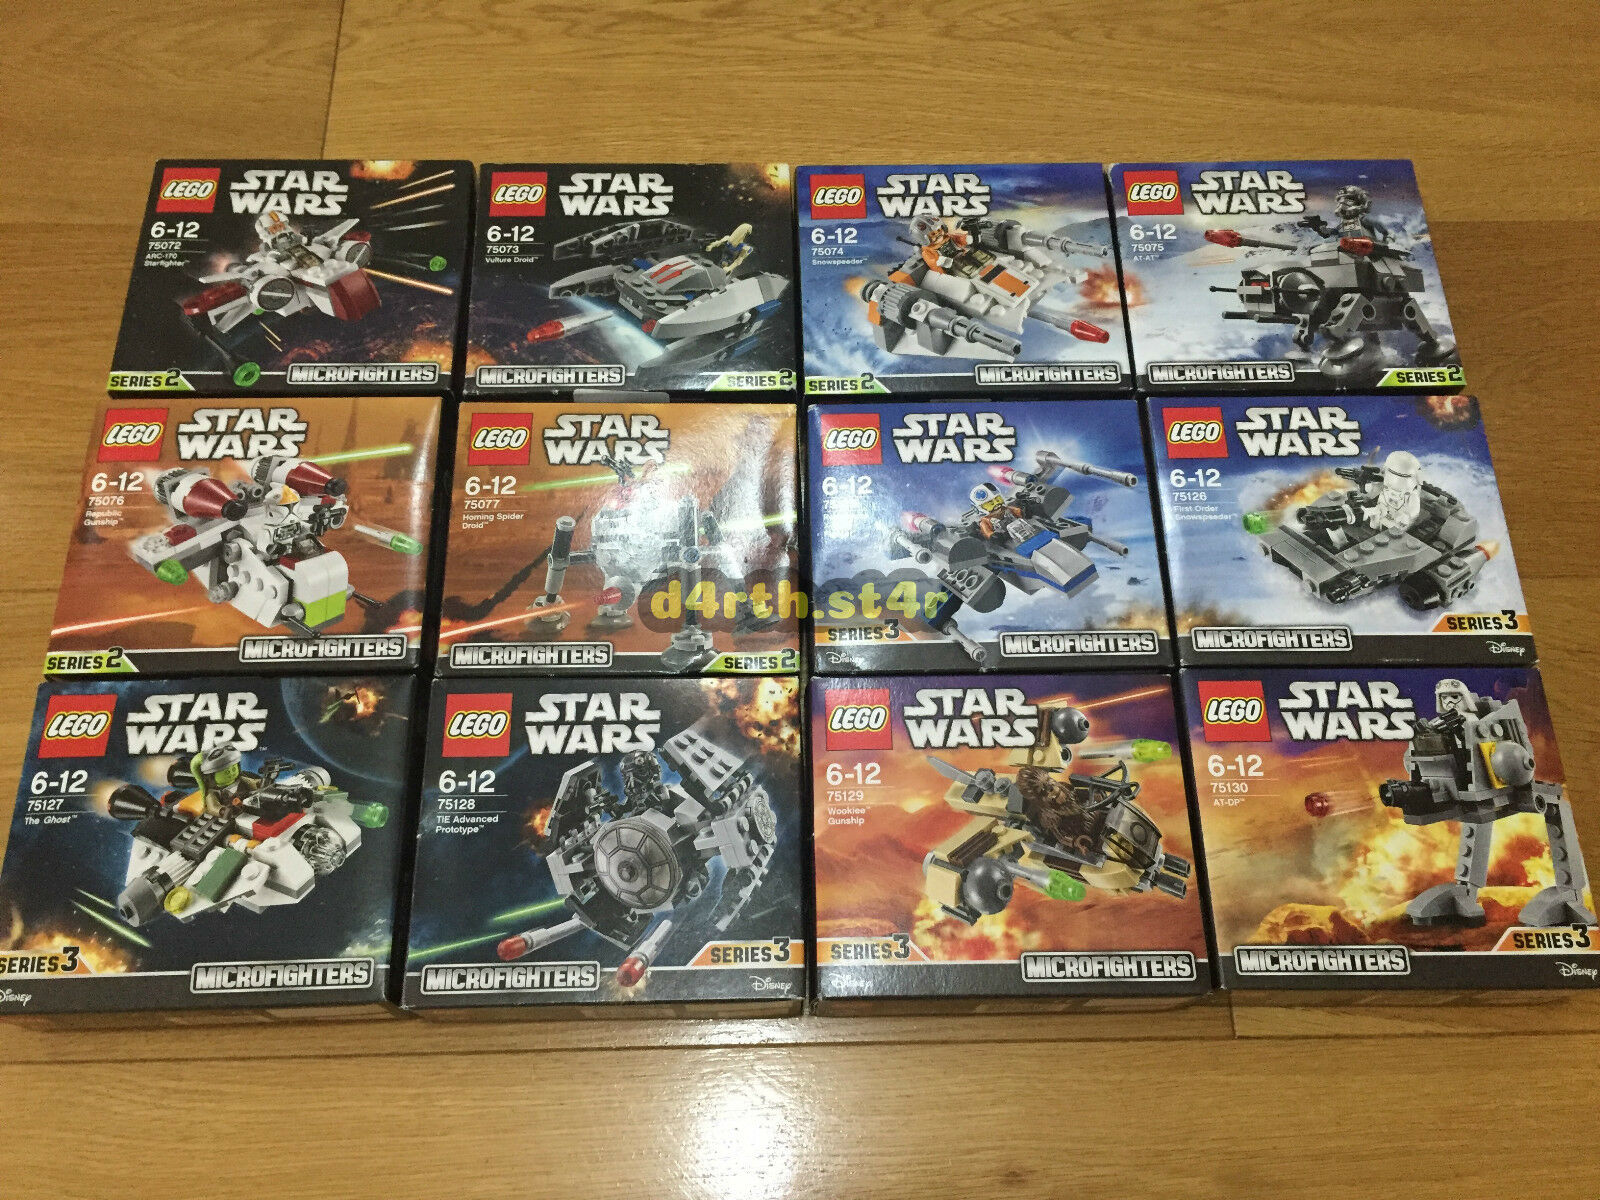 NUOVO   LEGO STAR WARS SERIE 2 & 3 Microfighters   No Minifigure/ultimo